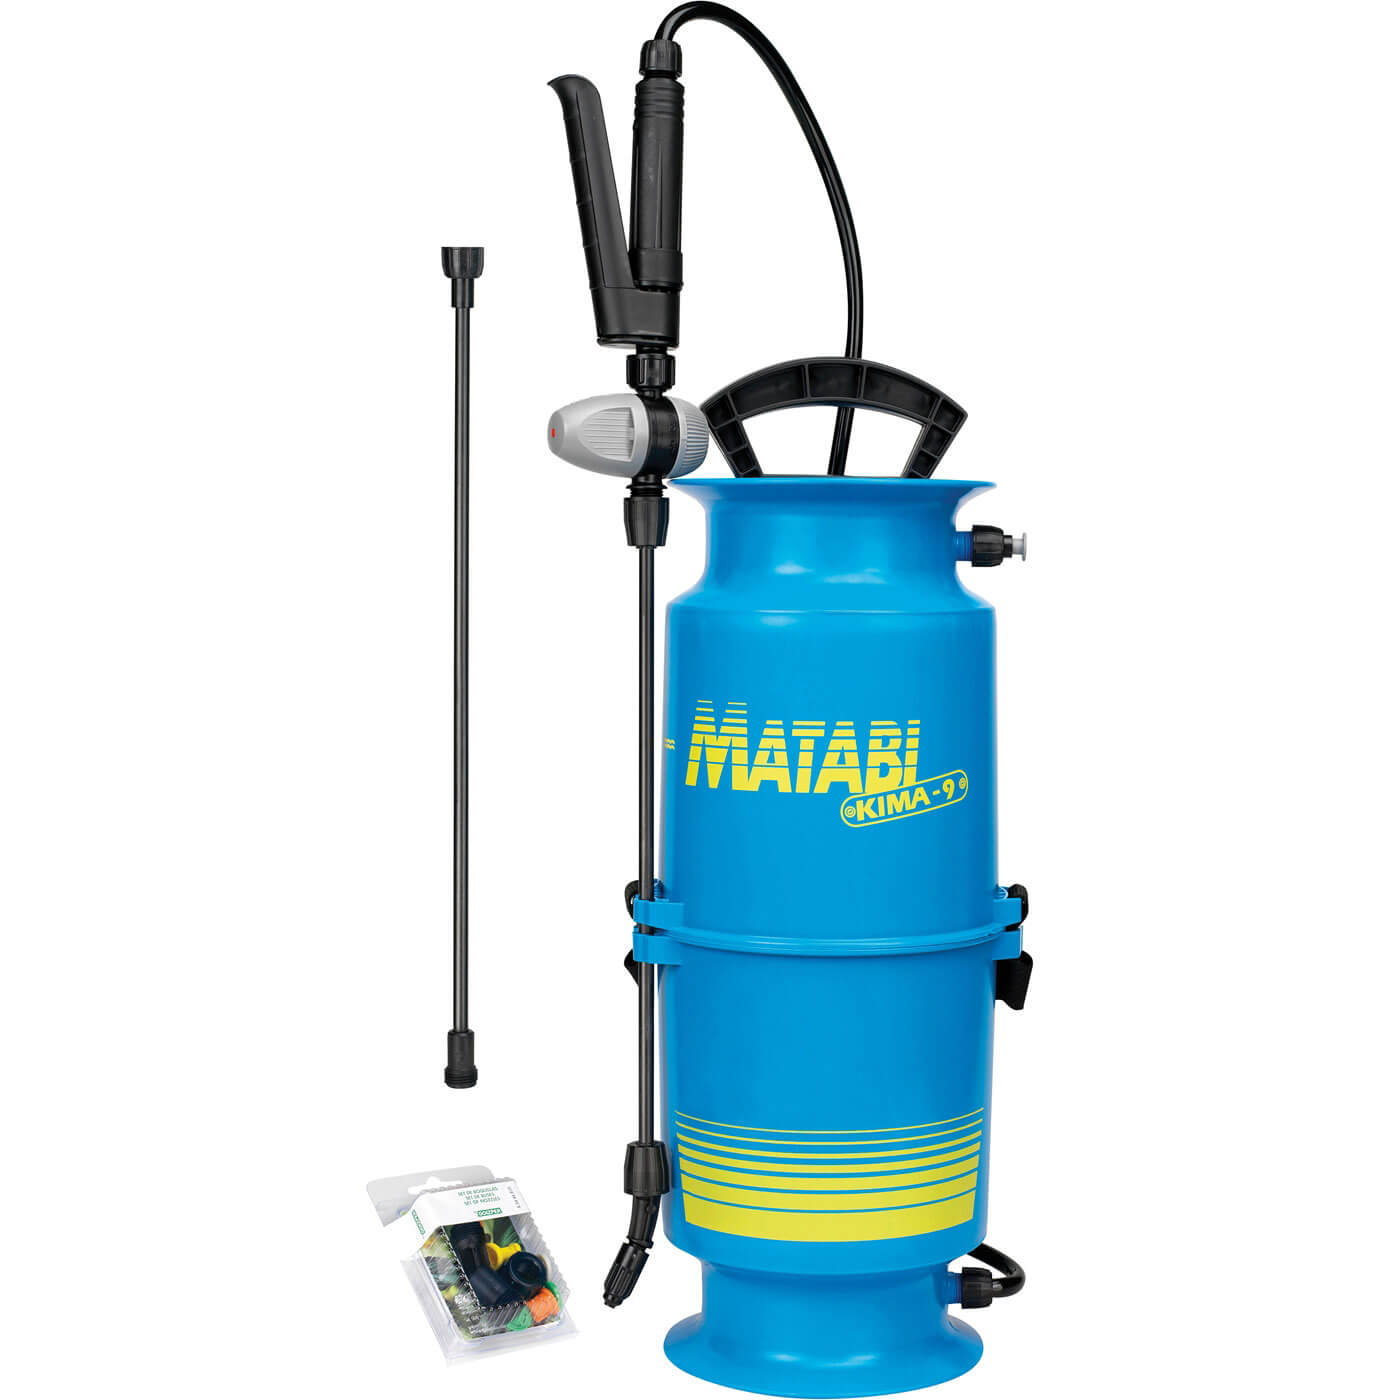 Image of Matabi Kima 9 Pressure Regulator Sprayer 6l